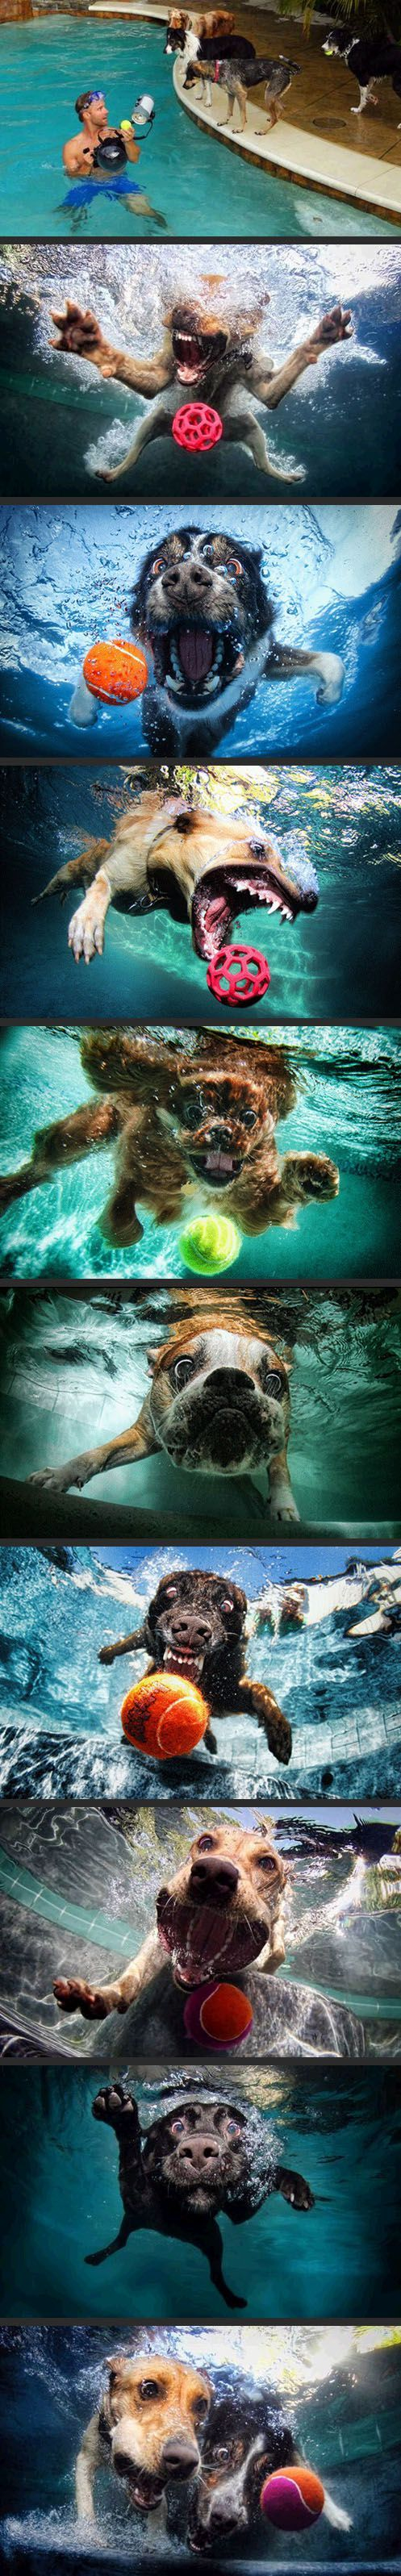 Dogs   ball   underwater camera = Awesome.i need to do this. Can't keep her face out of the water :D